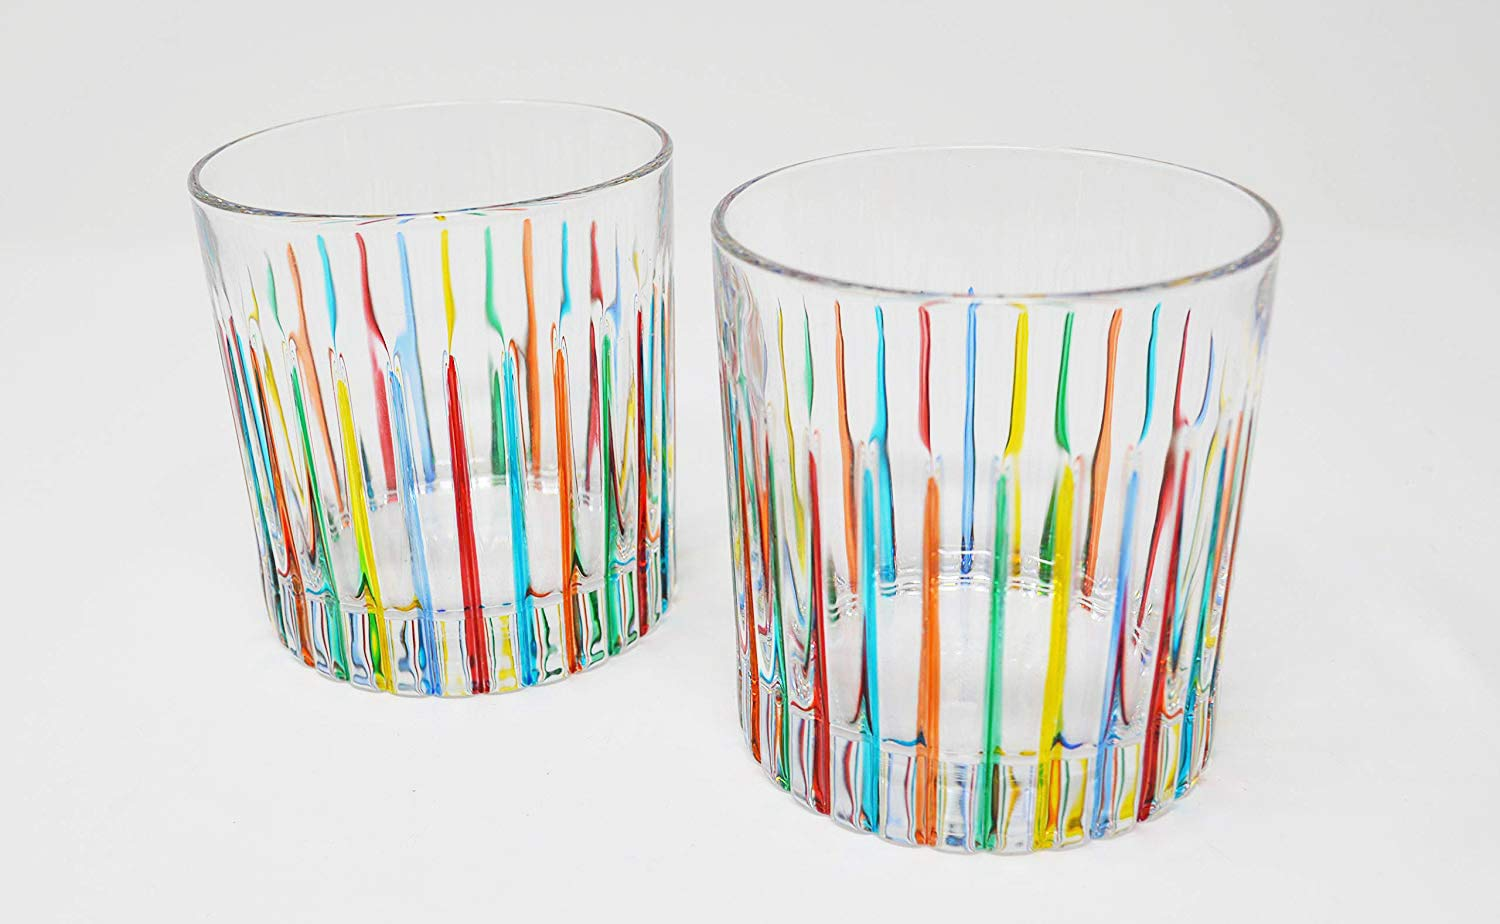 Authentic Italian Highball Glasses, Timeless, Set of 2 by My Italian Decor (Image #1)